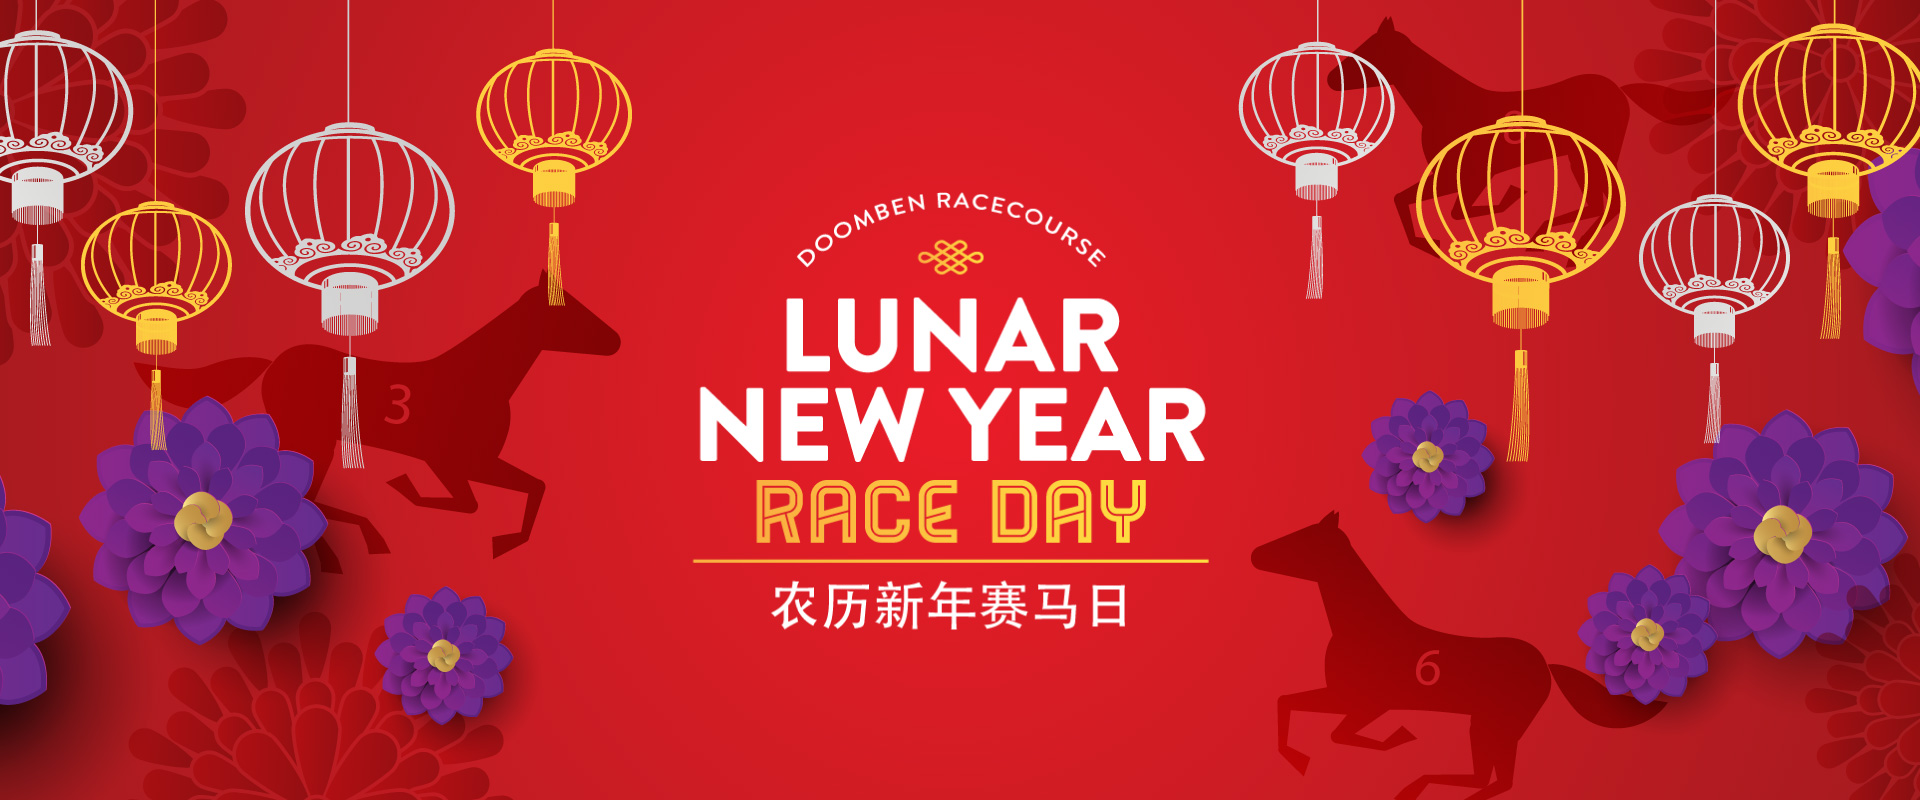 Join us at the inaugural Lunar New Year Raceday at Doomben Racecourse to celebrate the New Year in the Chinese calendar. Live racing on the track all day and a range of traditional festivities and entertainment to enjoy, this is one not to miss!